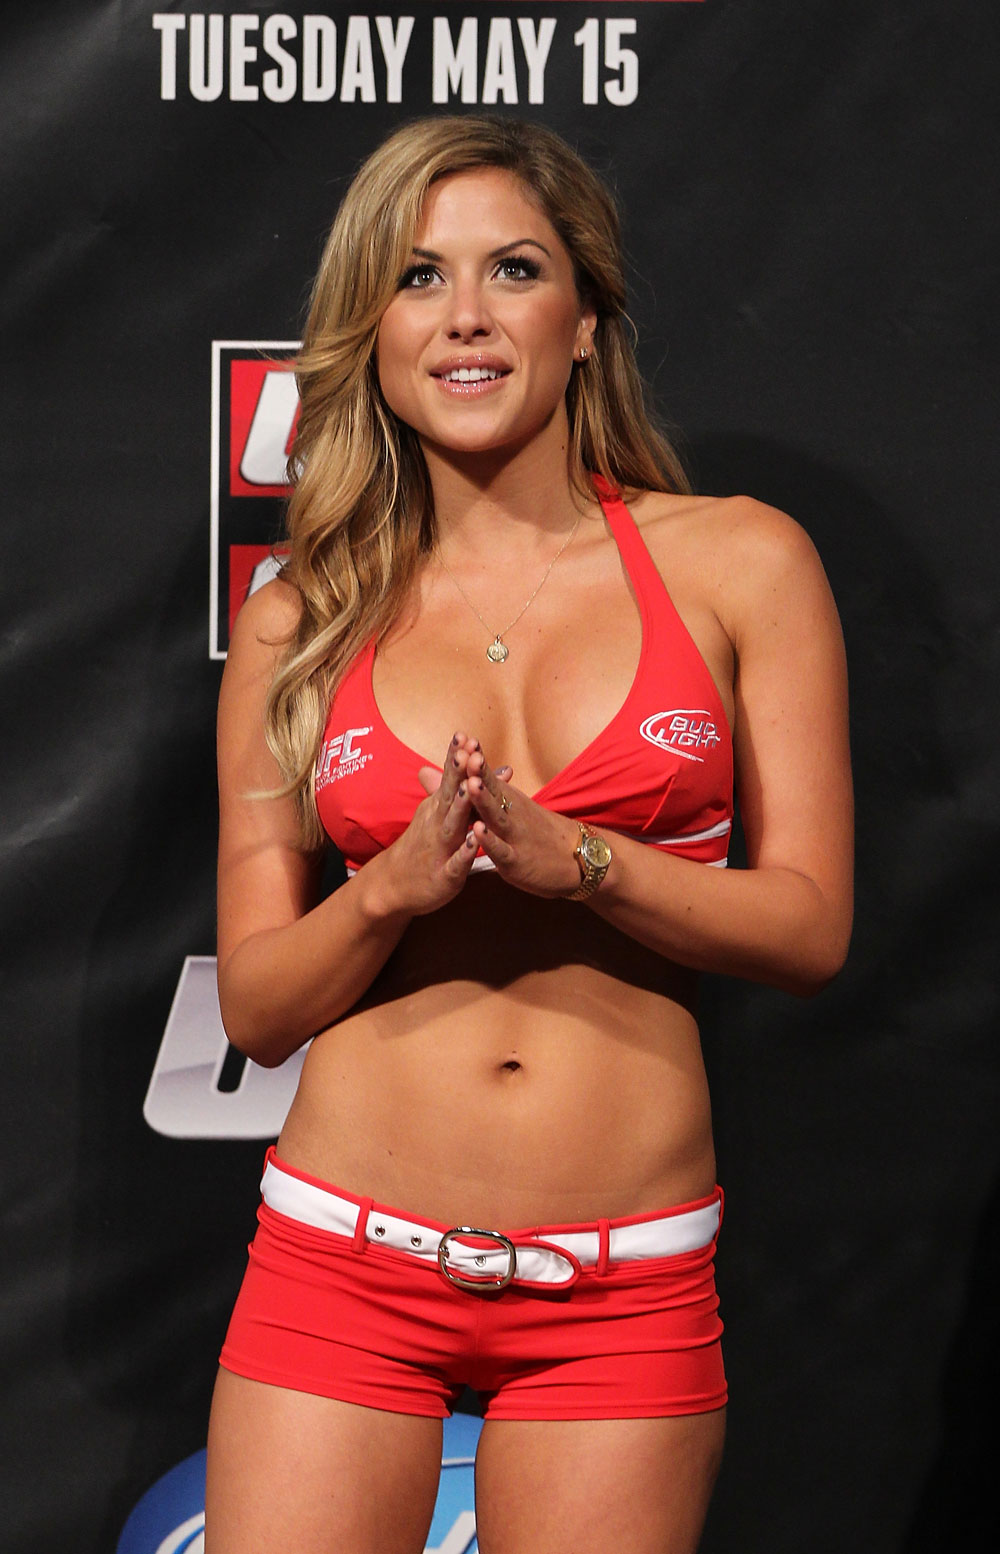 FAIRFAX, VA - MAY 14:  UFC Octagon Girl Brittany Palmer attends the UFC on Fuel TV official weigh in at Patriot Center on May 14, 2012 in Fairfax, Virginia.  (Photo by Josh Hedges/Zuffa LLC/Zuffa LLC via Getty Images)